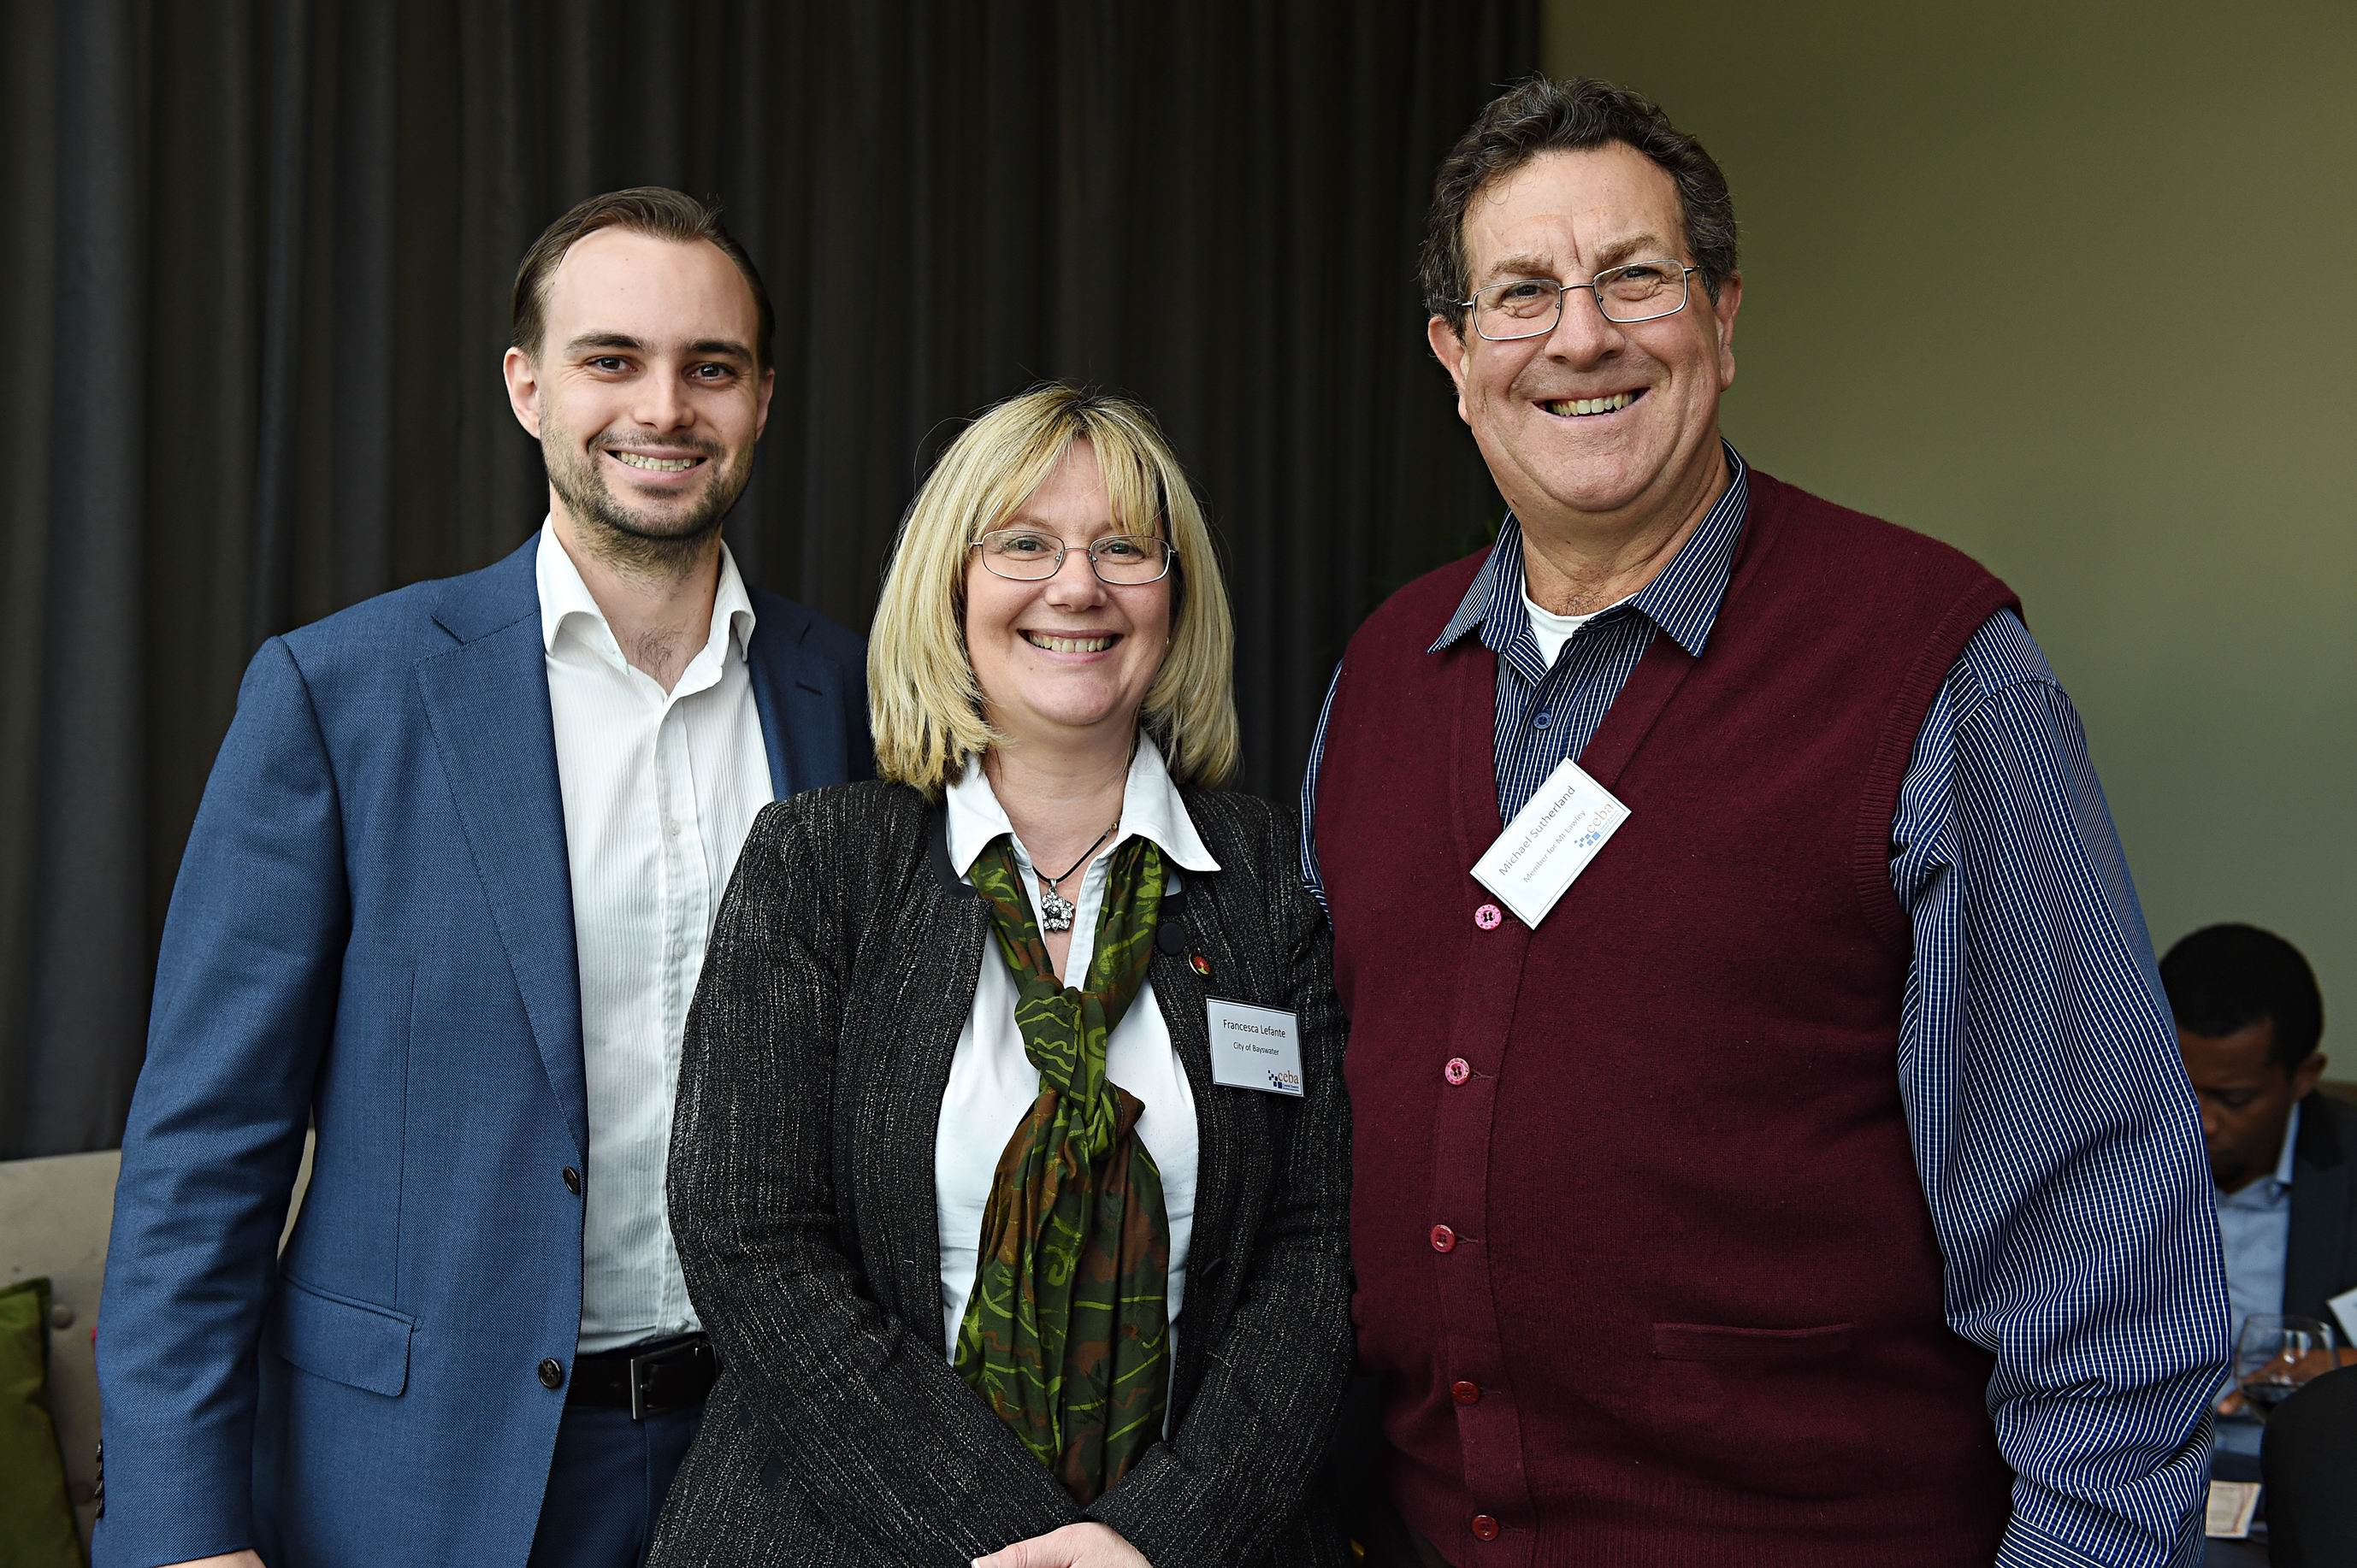 City of Bayswater's outgoing chief executive Francesca Lefante, pictured in 2014 with Cam Sinclair and Michael Sutherland.